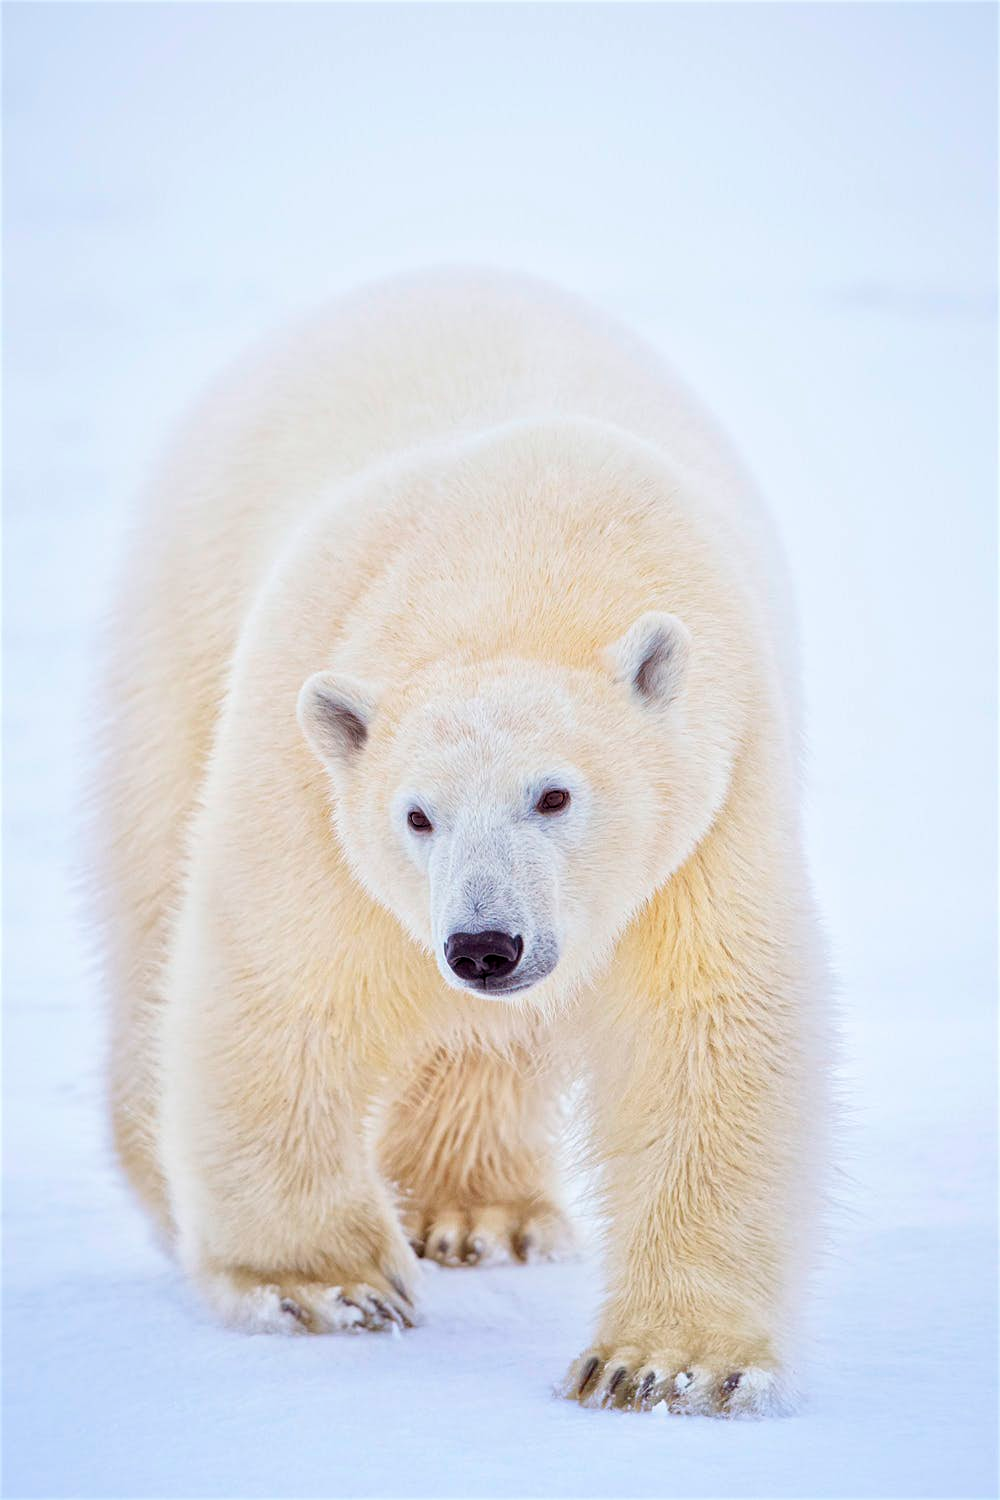 Polar bears close encounters of the furred kind in Canada